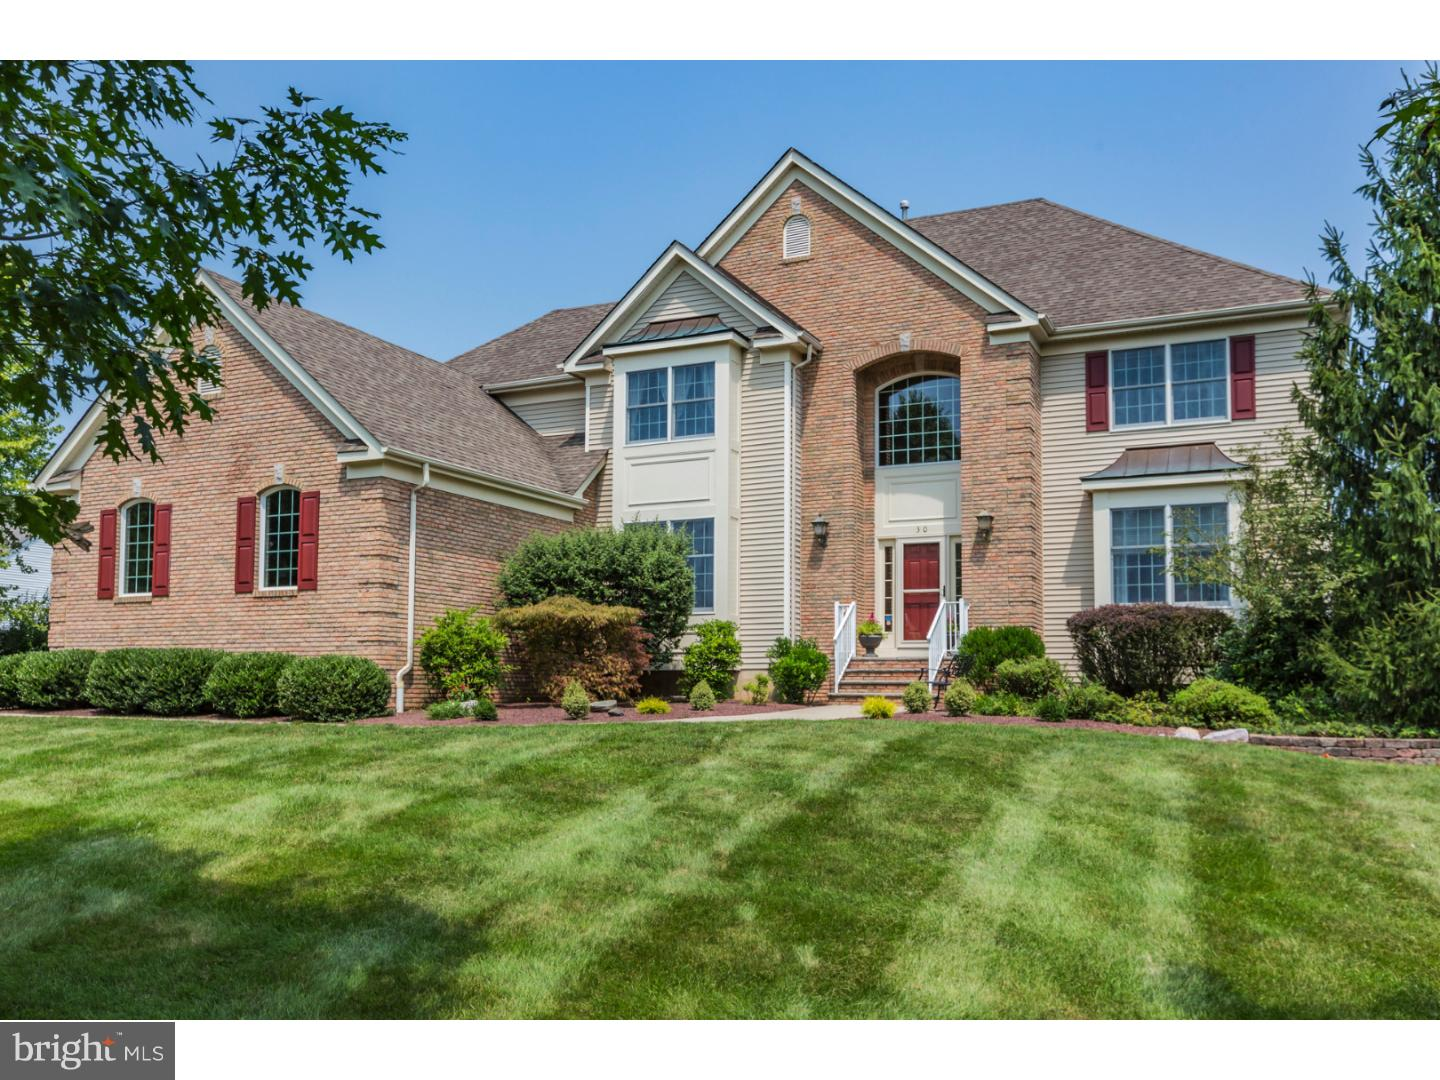 Property for Sale at 30 ROSEWOOD Court Belle Mead, New Jersey 08502 United States